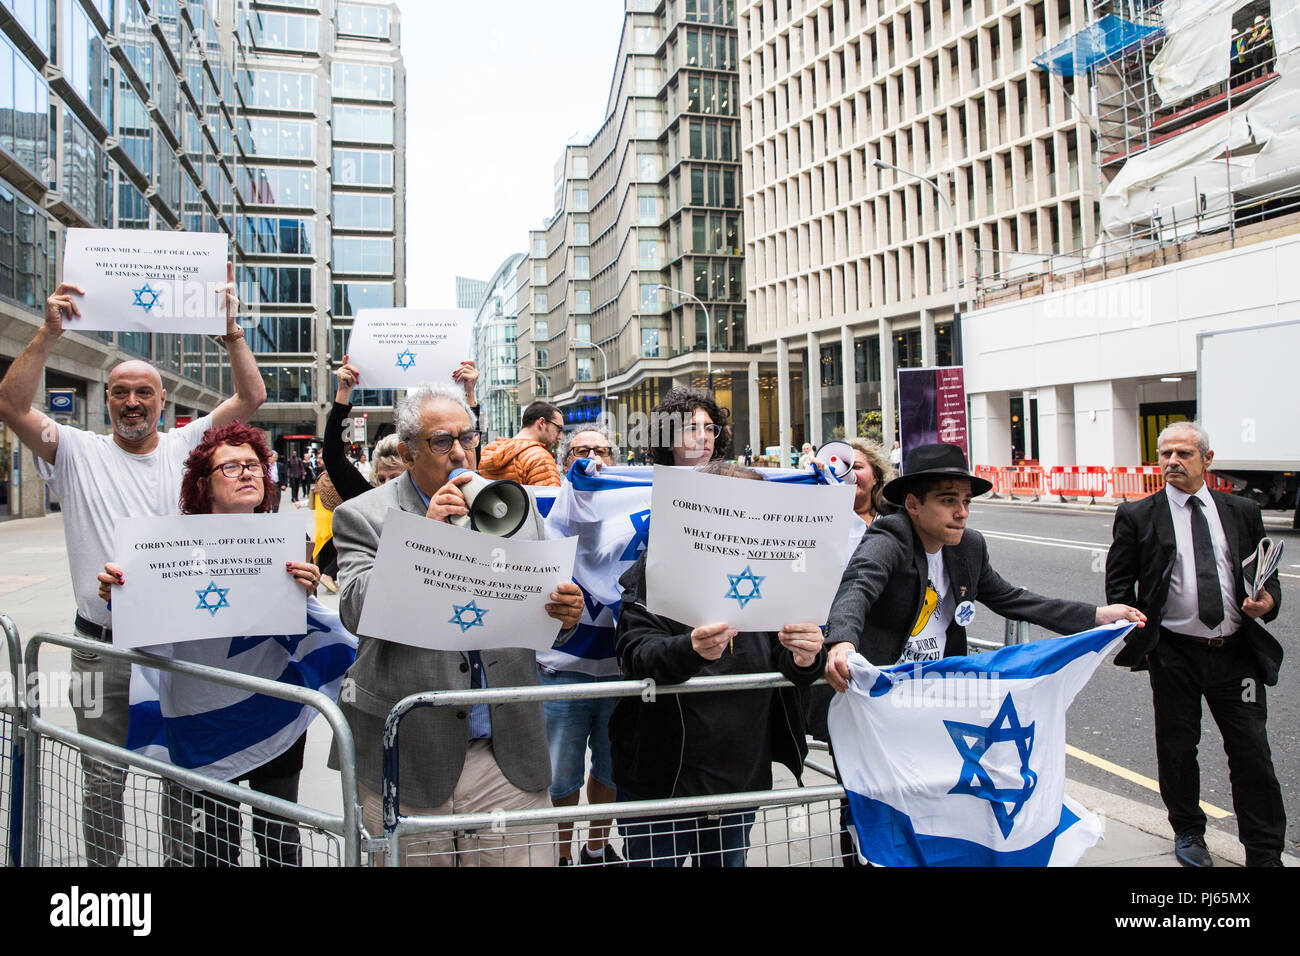 London, UK. 4th September, 2018. A group of around ten anti-Corbyn Jewish activists holds a counter-protest against supporters of Jeremy Corbyn from Jewish Voice for Labour, Momentum and other groups campaigning outside the headquarters of the Labour Party on the day on which the party NEC was expected to adopt the IHRA definition and examples of anti-Semitism. Credit: Mark Kerrison/Alamy Live News Stock Photo